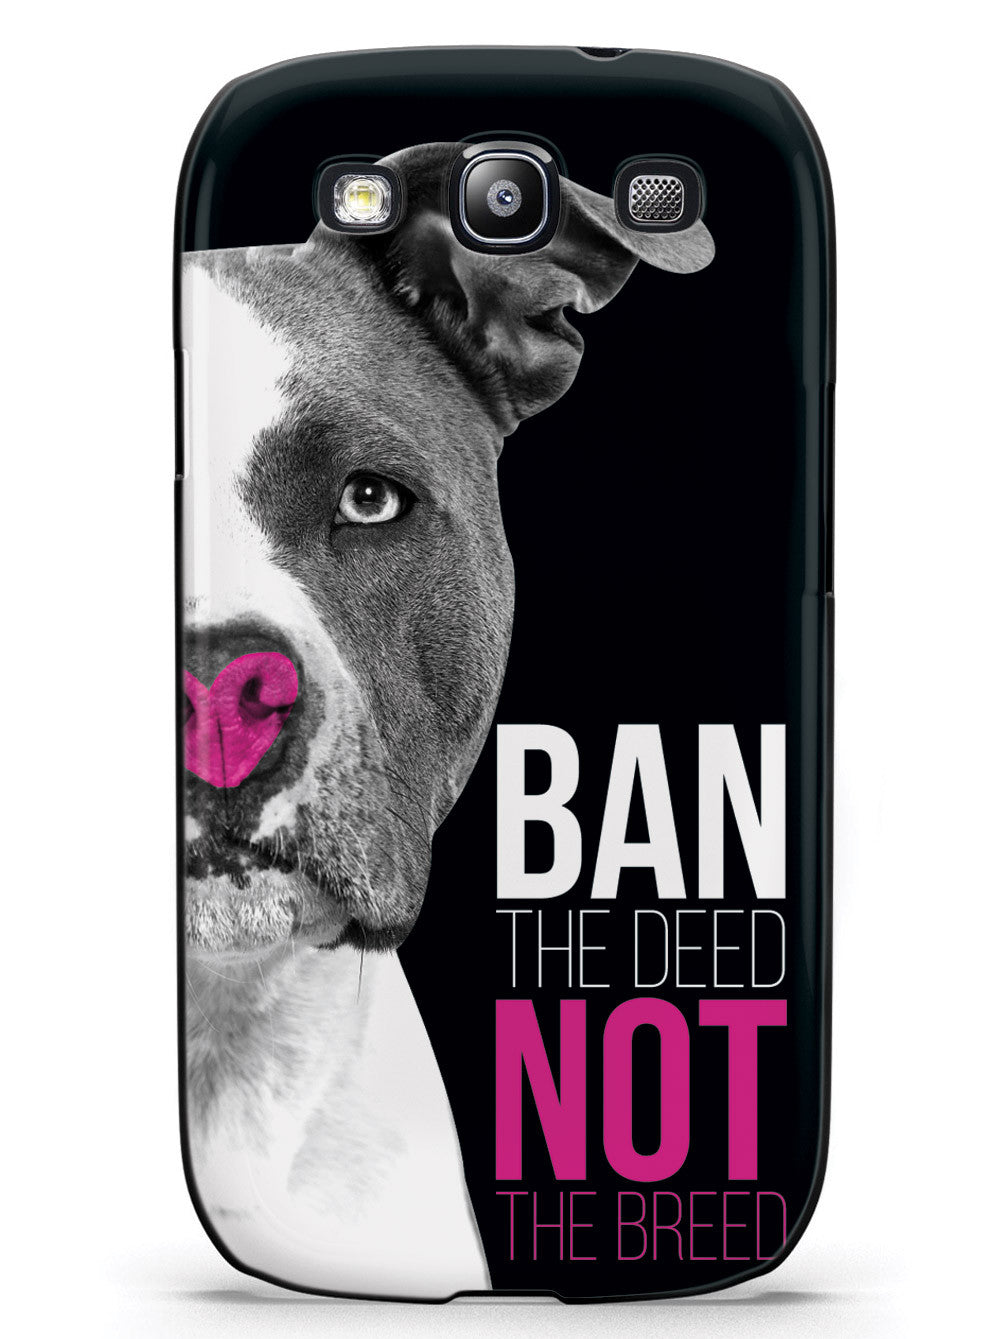 Ban The Deed, Not The Breed - Pitbull Case